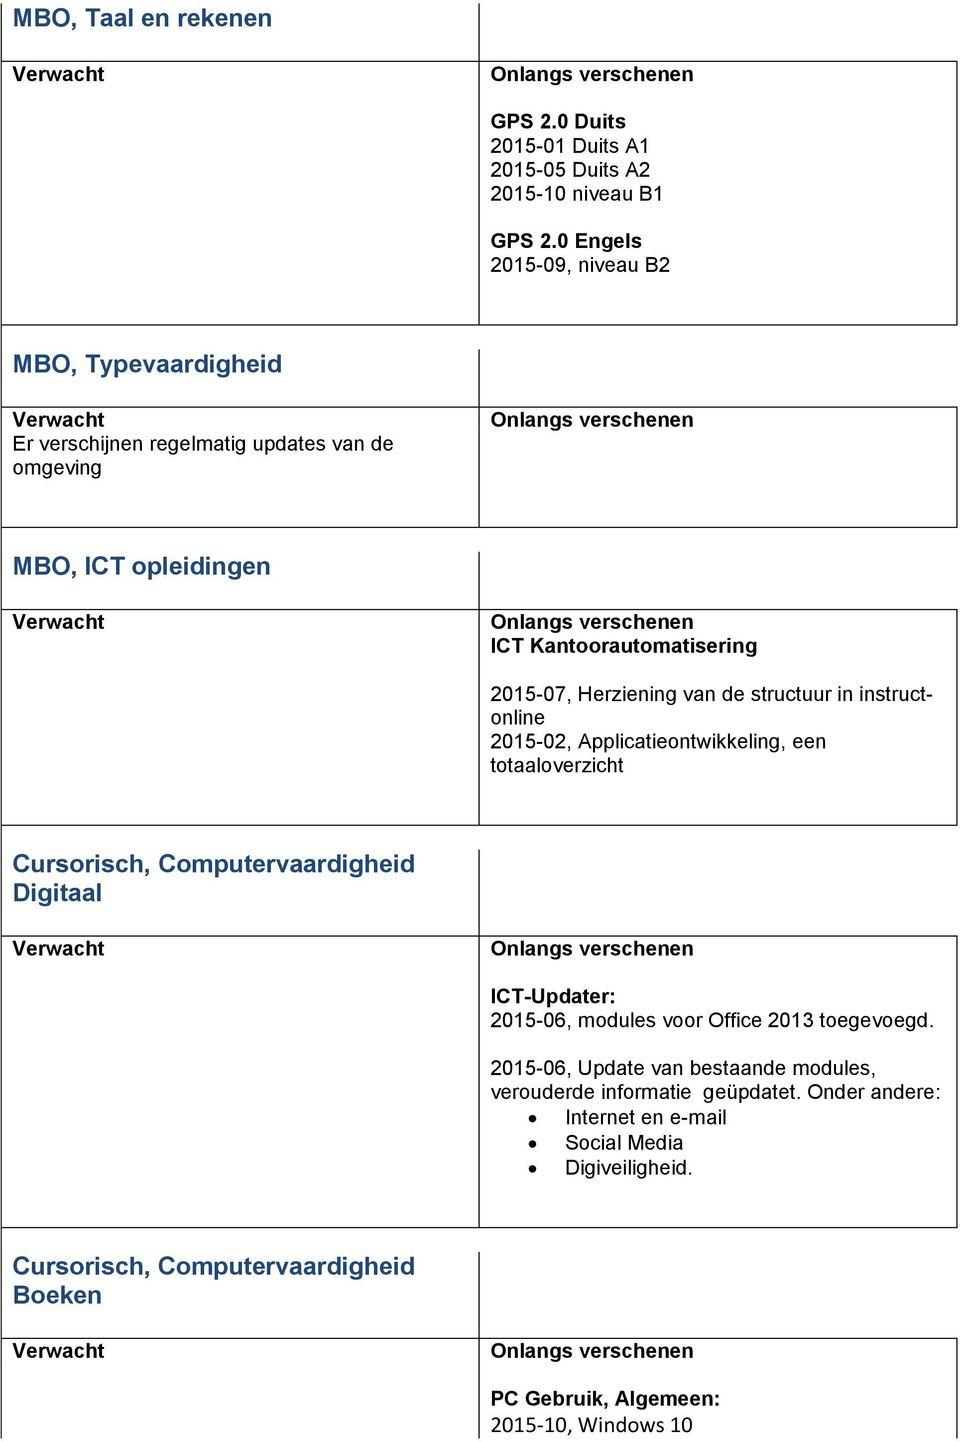 instructnline 2015-02, Applicatientwikkeling, een ttaalverzicht Cursrisch, Cmputervaardigheid Digitaal ICT-Updater: 2015-06, mdules vr Office 2013